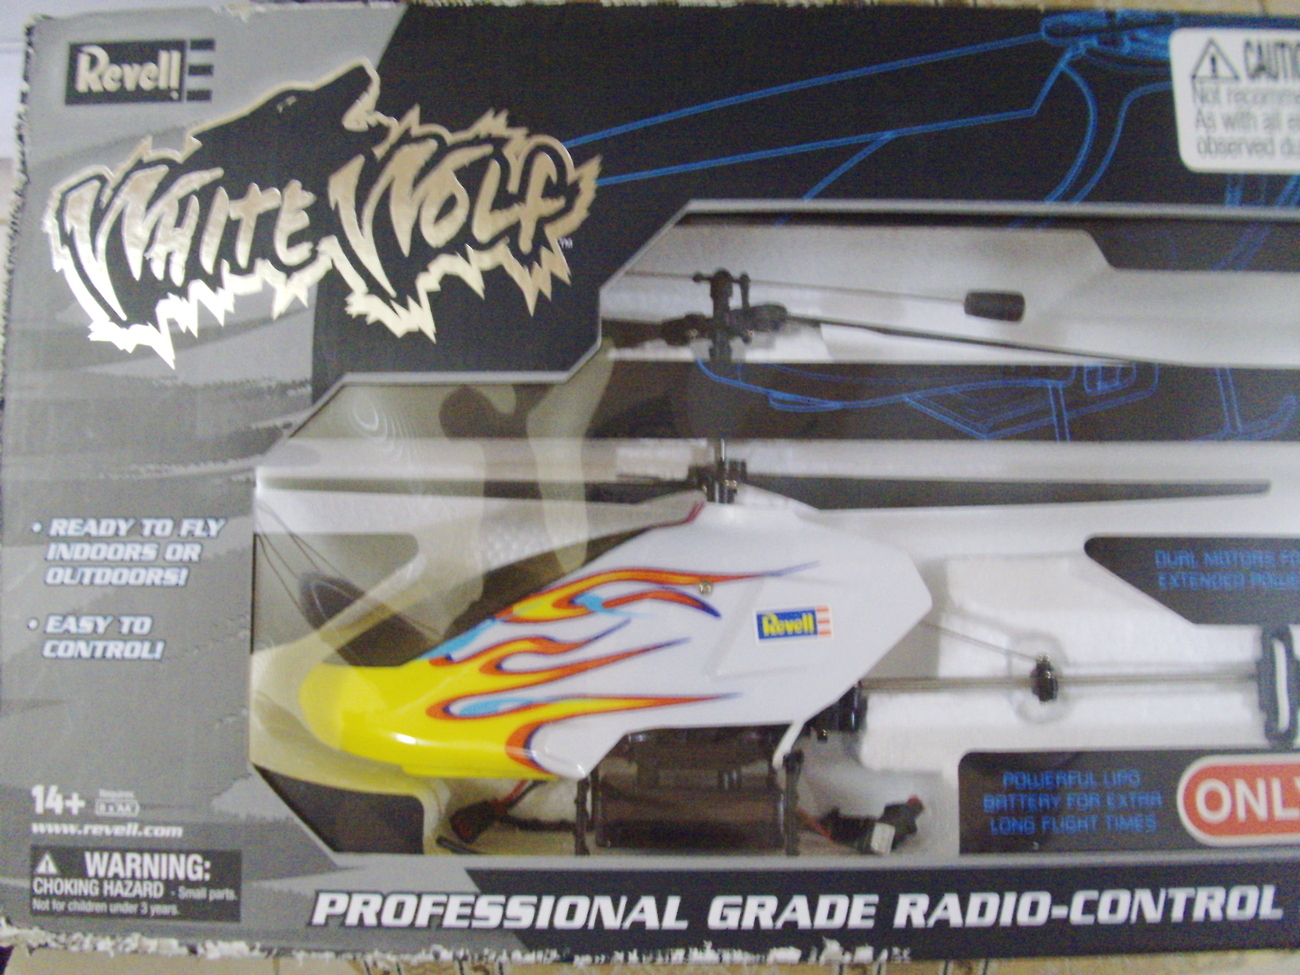 Revell White Wolf Pro Grade Radio-Control Helicopter - New